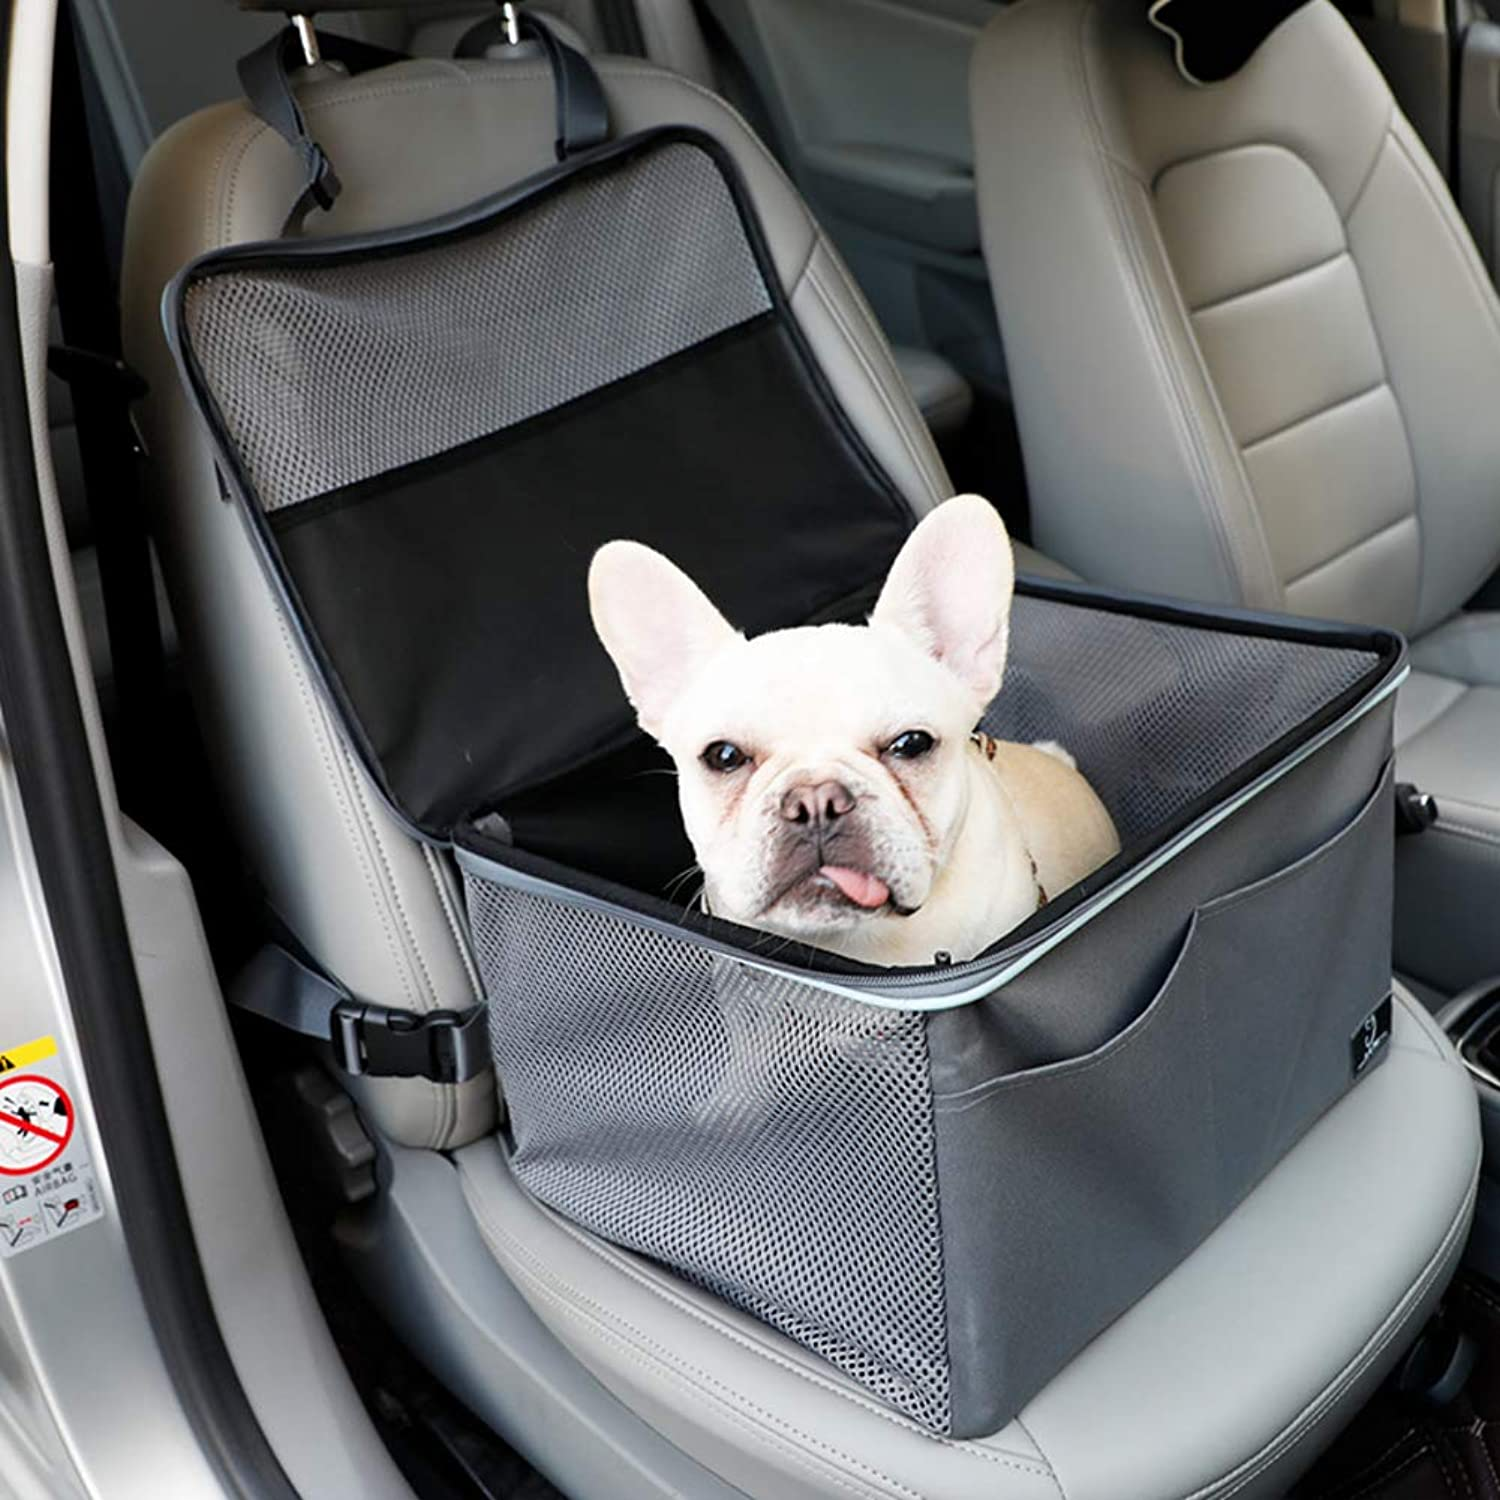 GX&XD Heavy duty Pet front seat cover,Dog car seat cover With zipper and pocket Antidirty Pet back seat covers Car seat pet predector Predect your carA